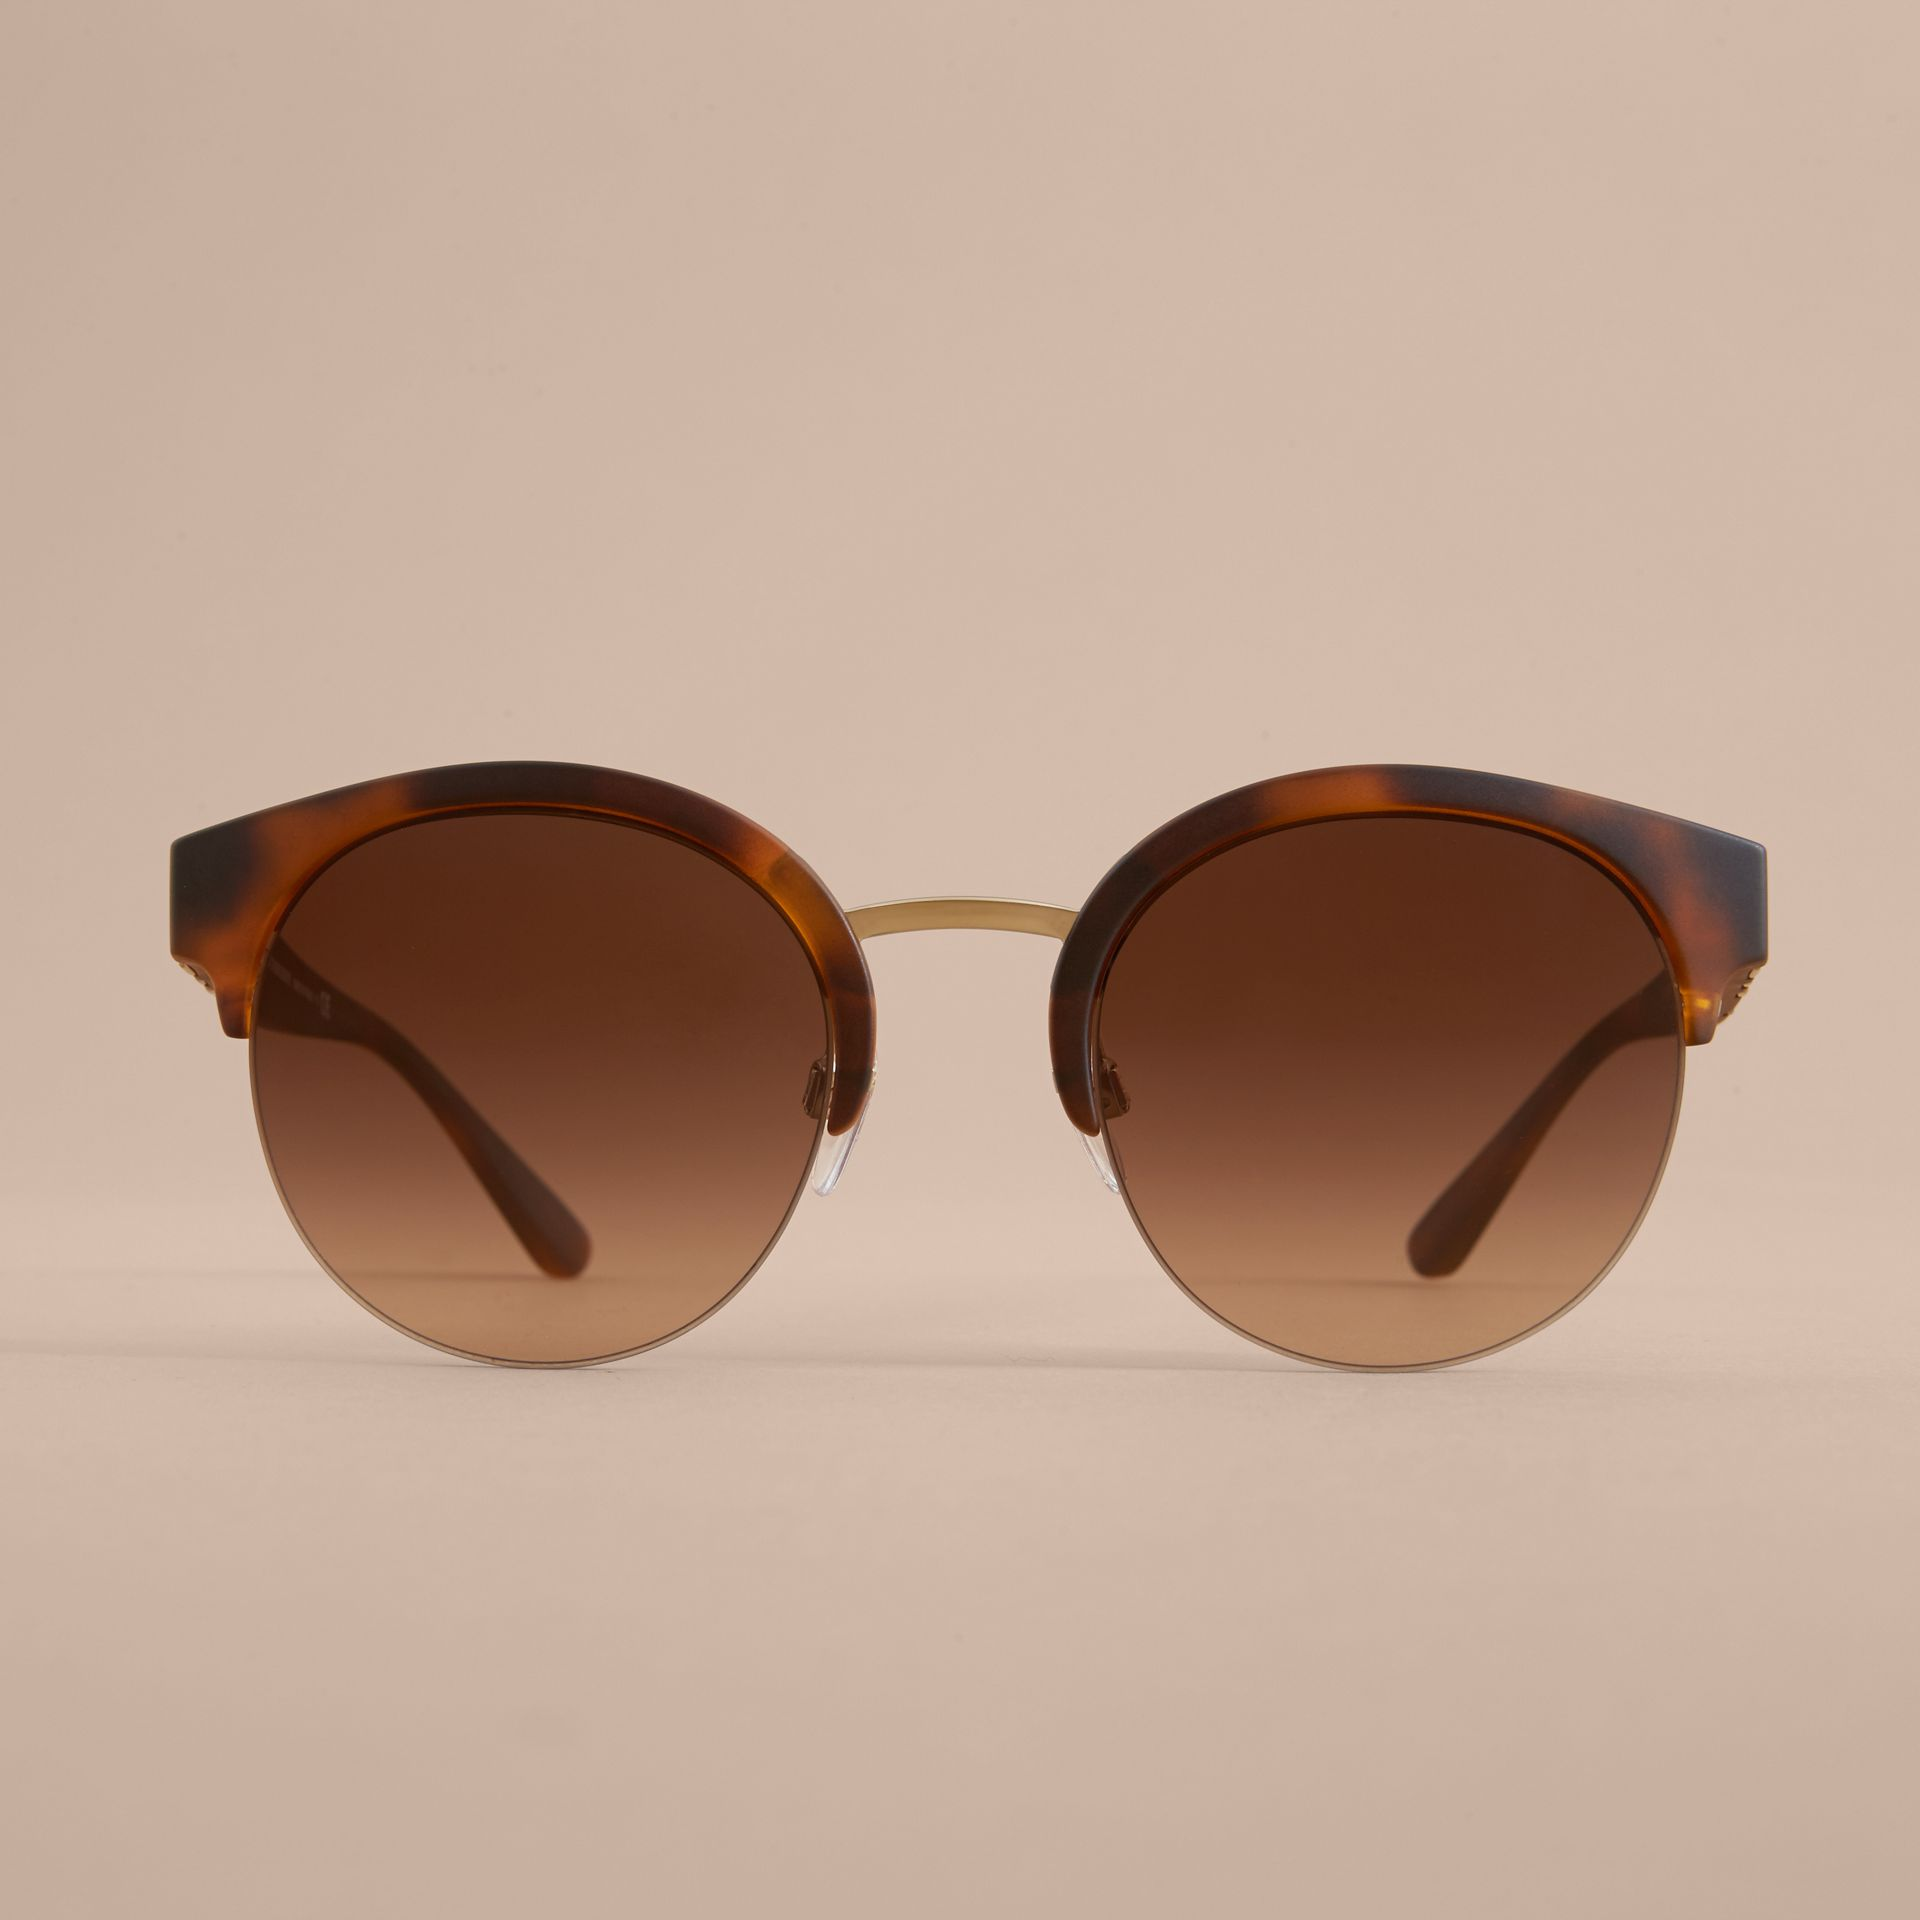 Check Detail Round Half-frame Sunglasses in Brown - Women | Burberry United Kingdom - gallery image 2